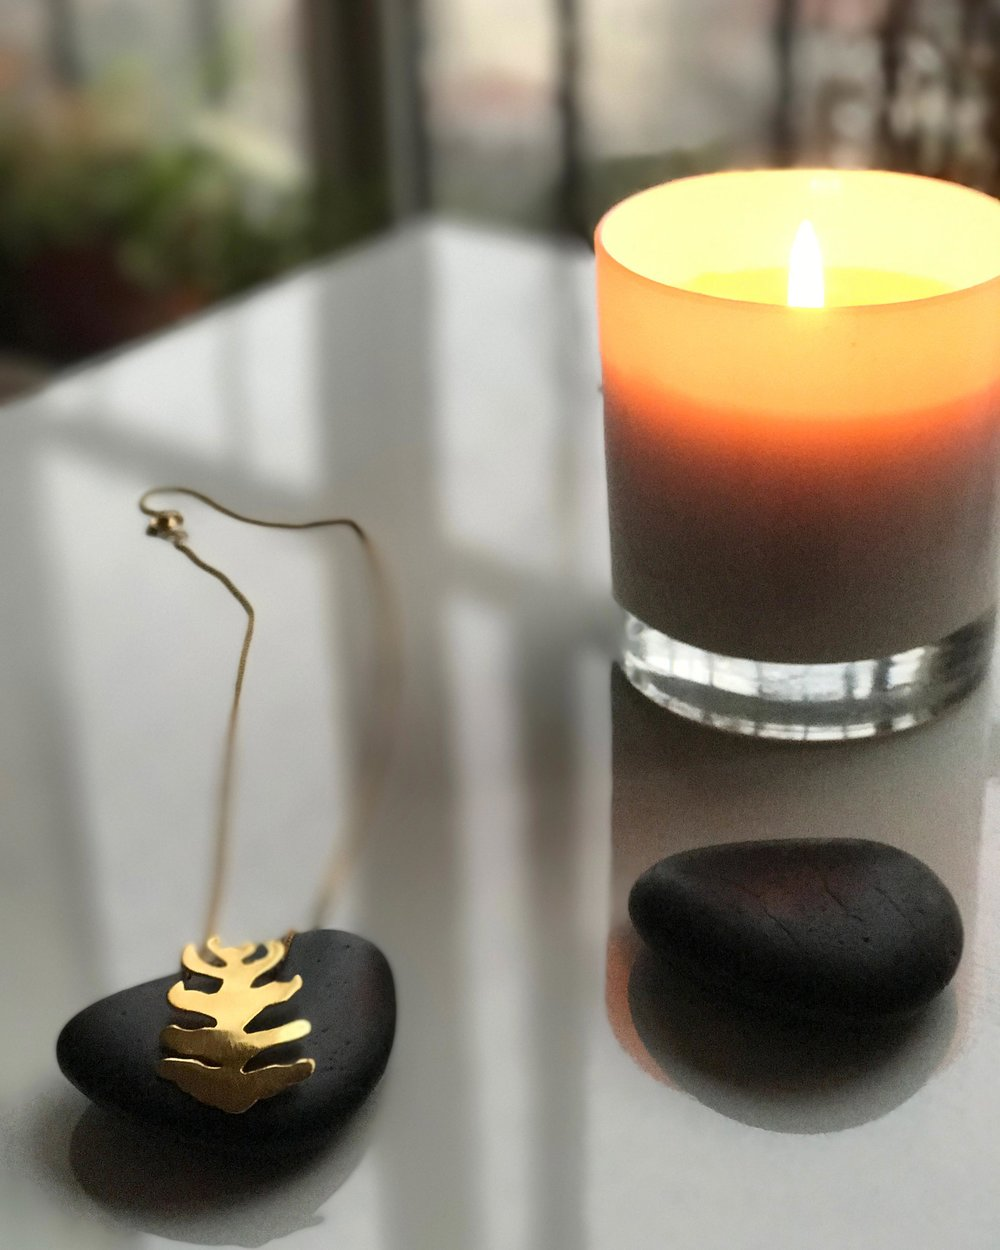 Frassai-jewelry-and-candles.jpg